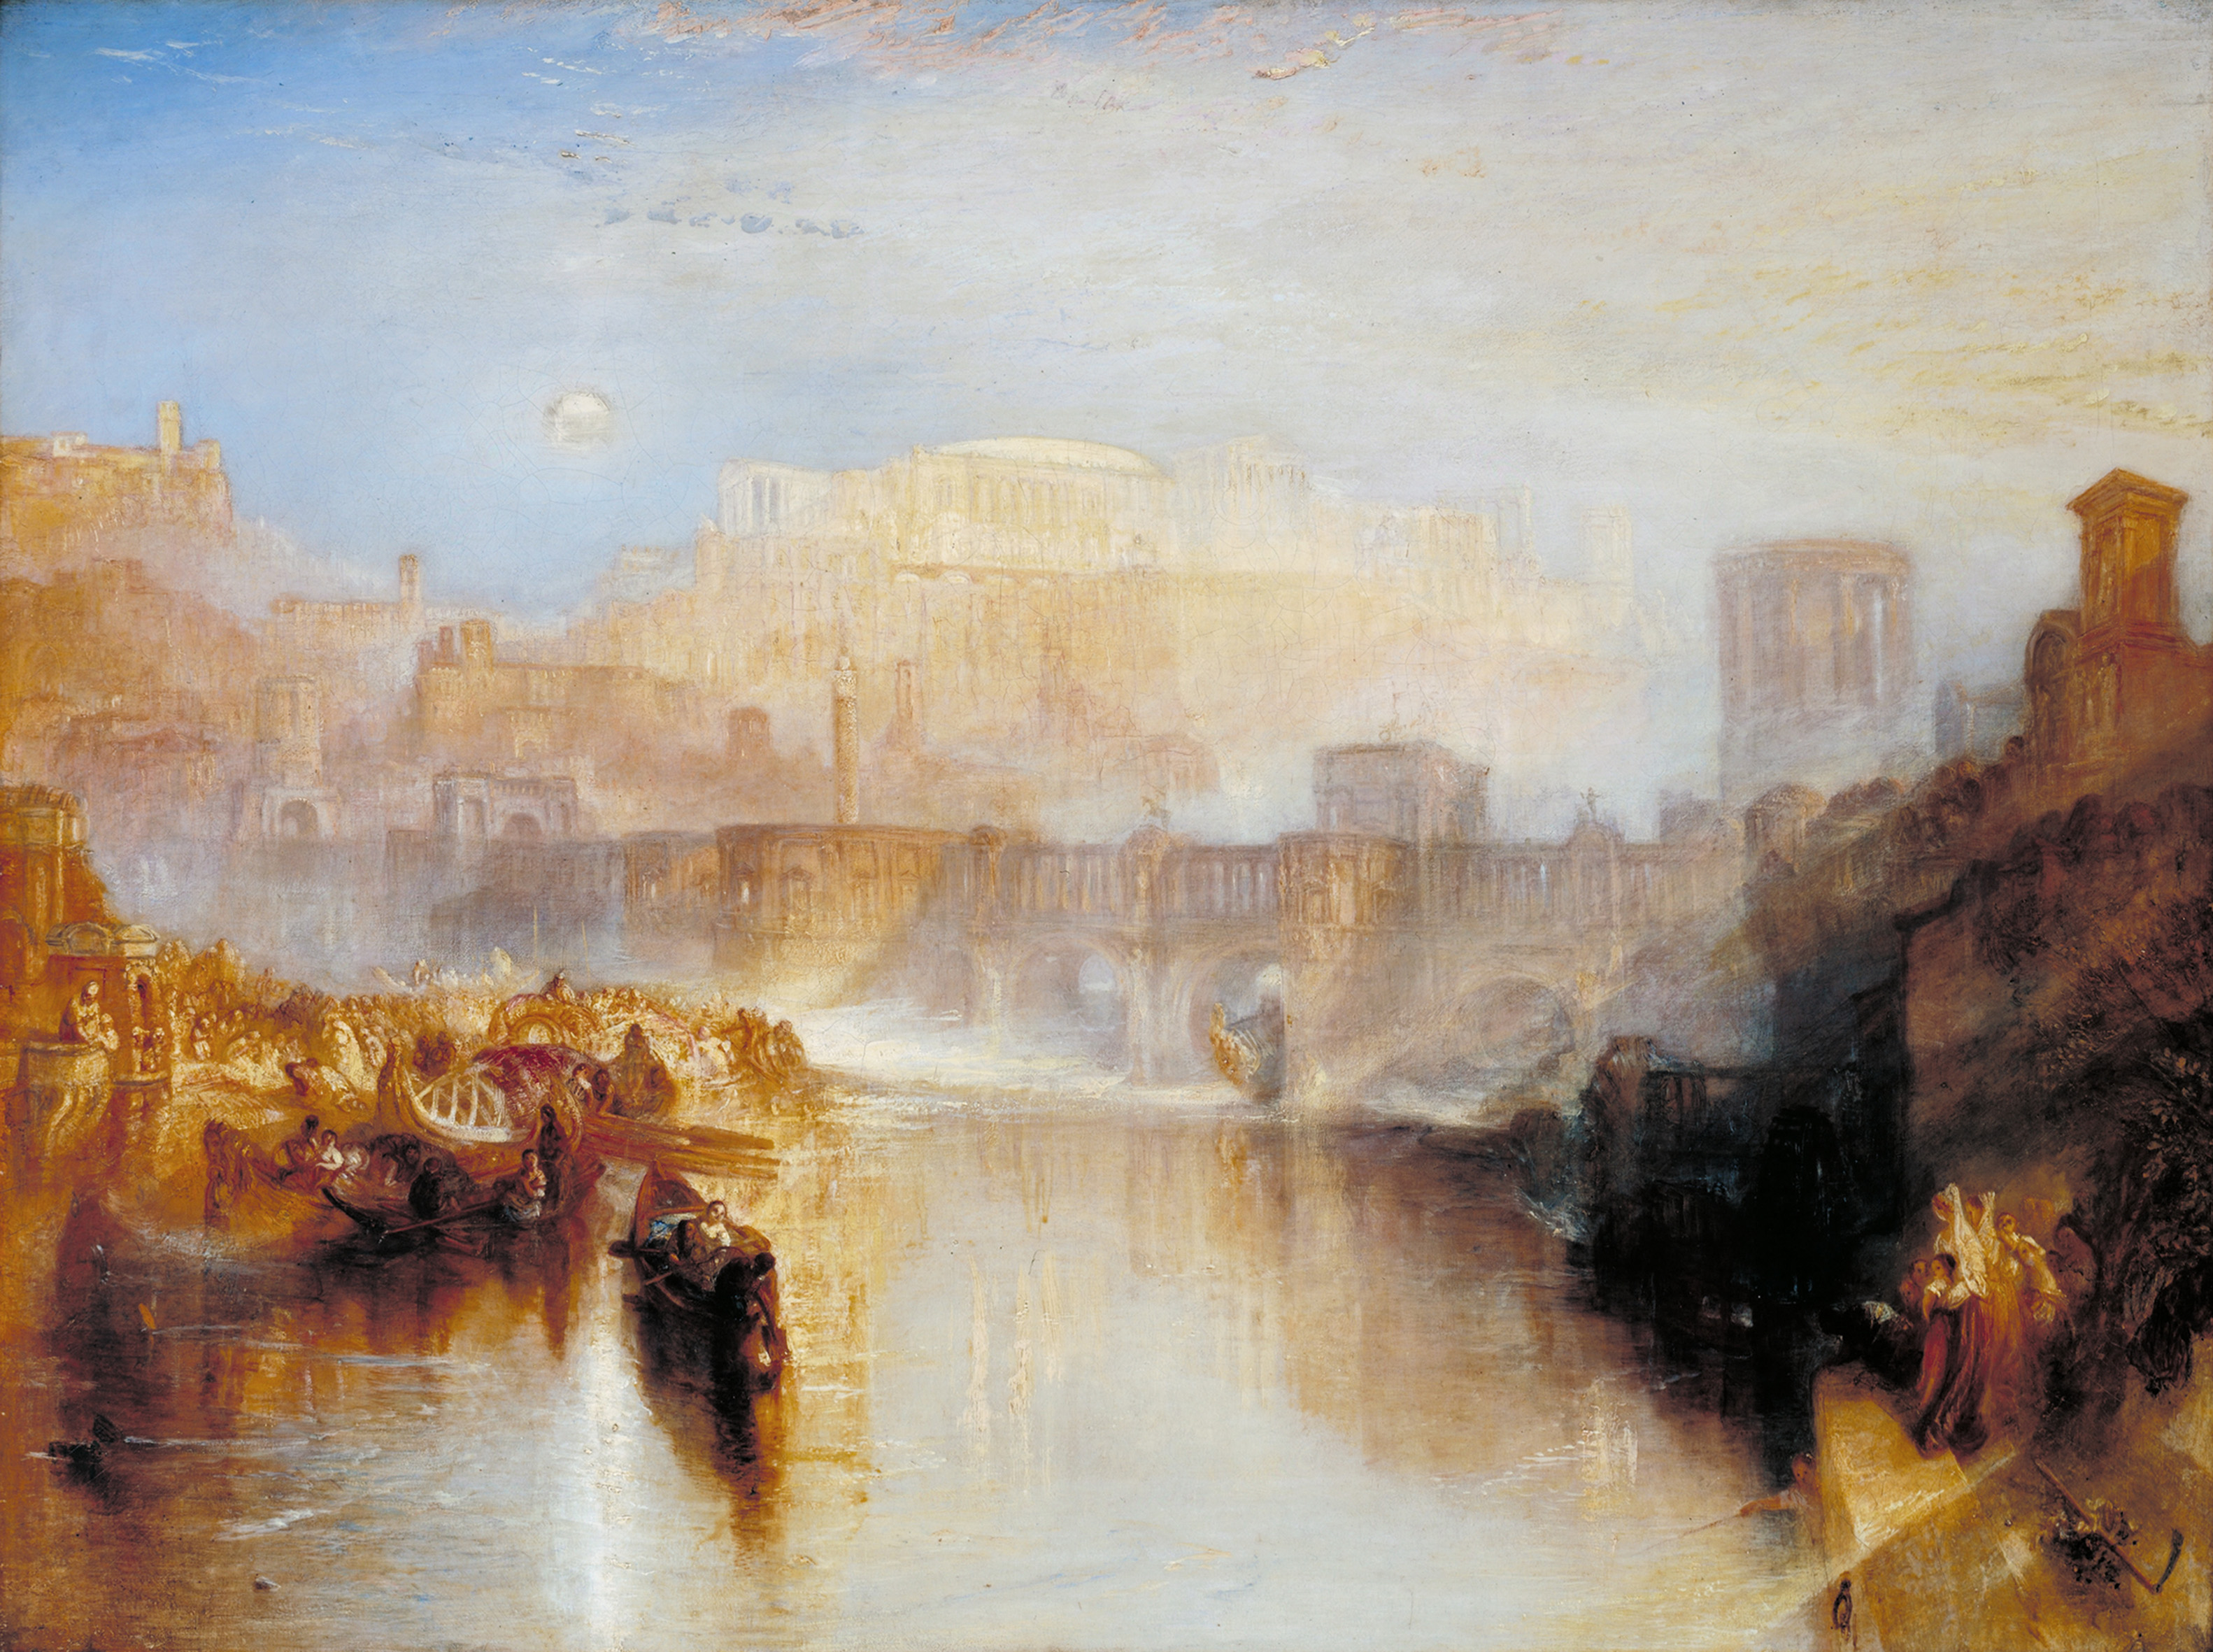 A creator of mystery: The J.M.W. Turner Exhibit at the Art Gallery of Ontario